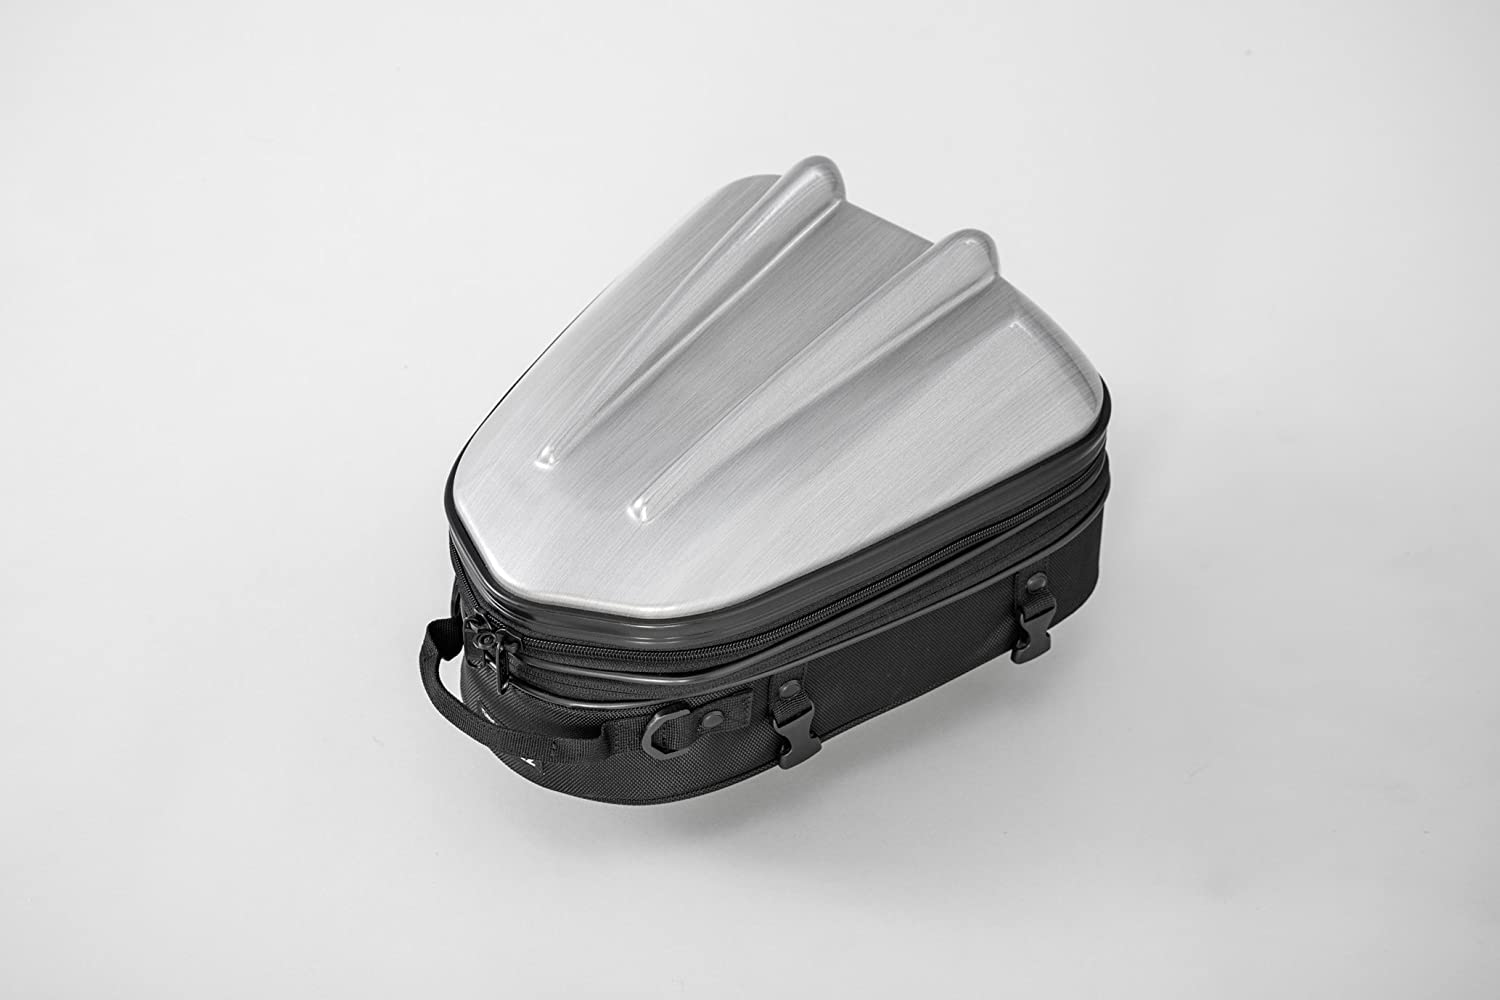 Tanax Motorcycle Polycarbonate Hard-Shell-Form Sporty Rear Seat Bag MT-Style, Capacity : 10-14L (2.8-3.5Gal), Model MFK-239 - HairLine Silver